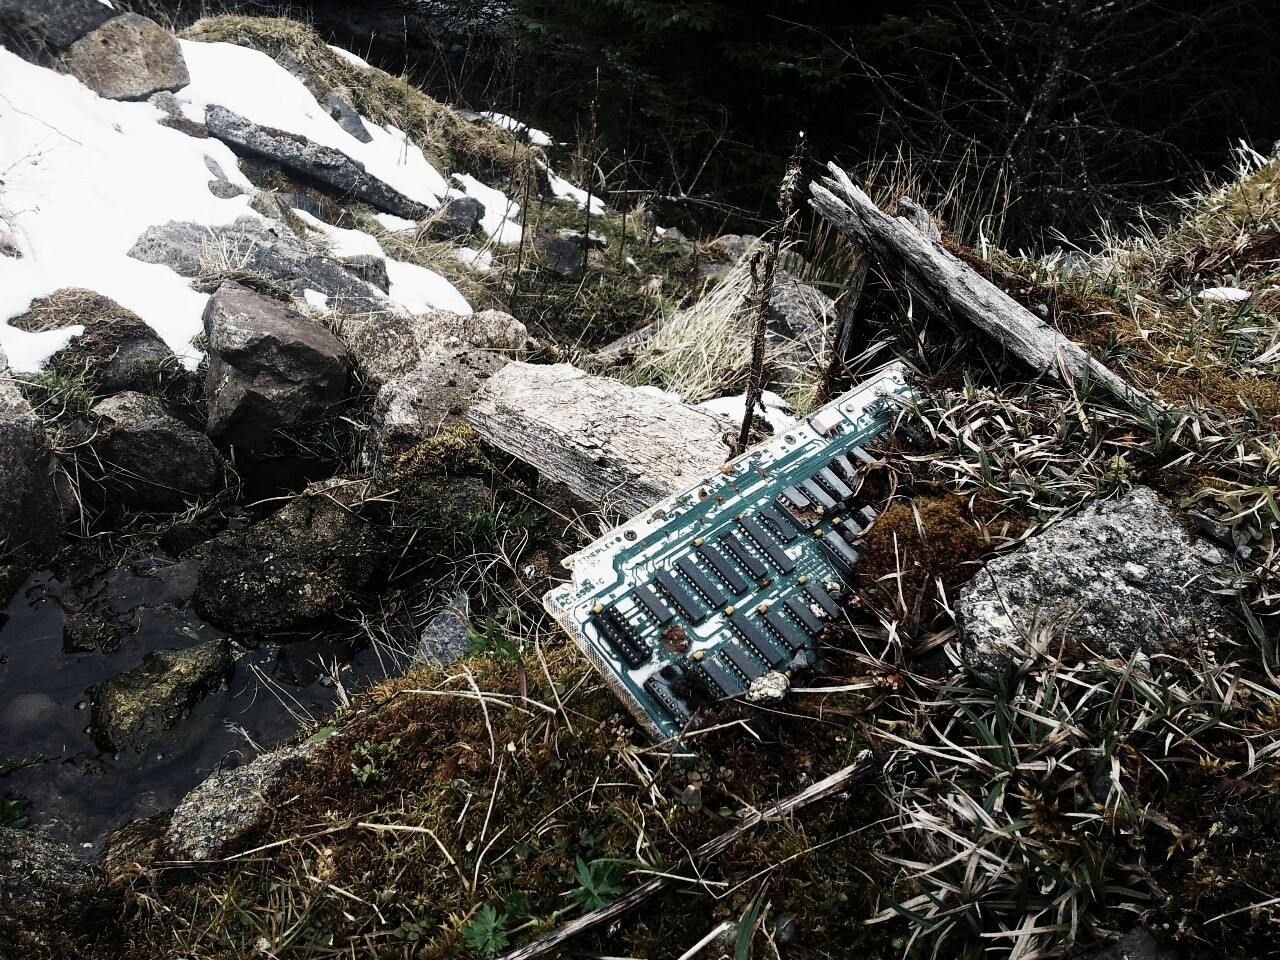 Early computer stuck in Dublin Mountains